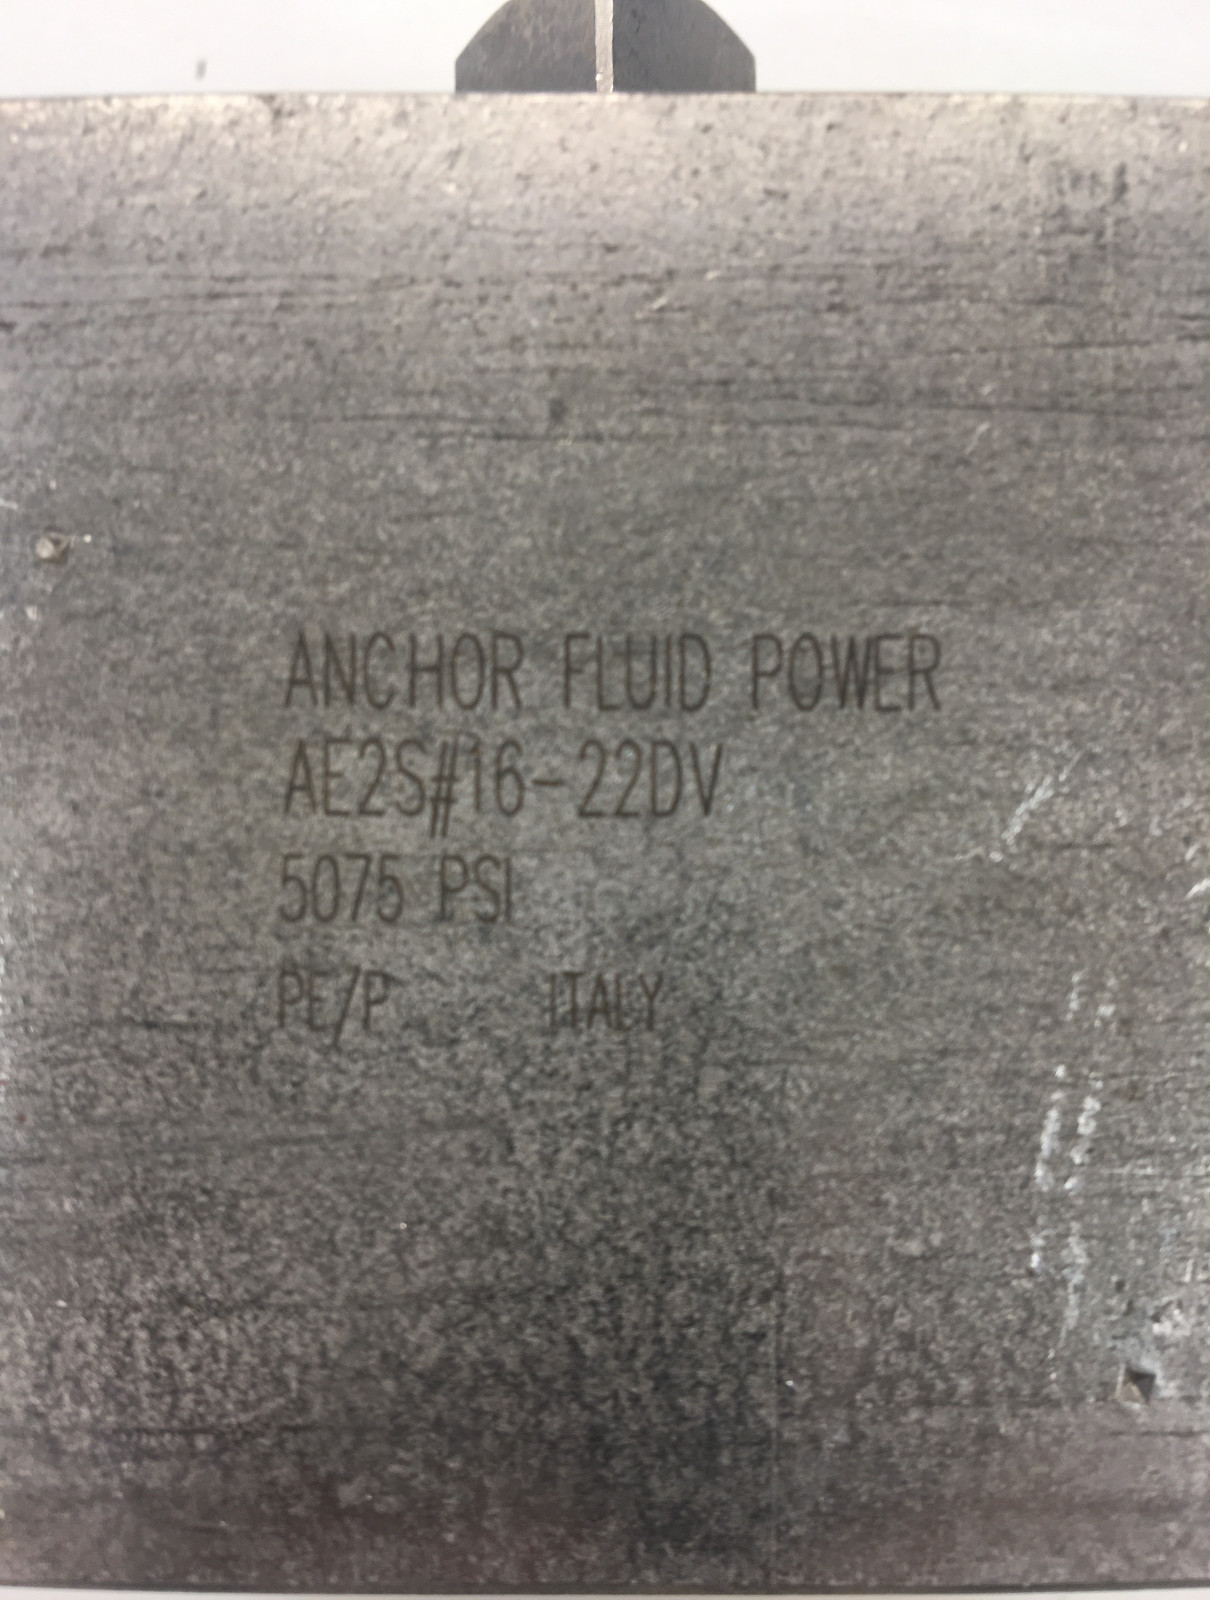 Anchor Fluid Power AE2S#16R-22DV Two Way In-Line Ball Valve